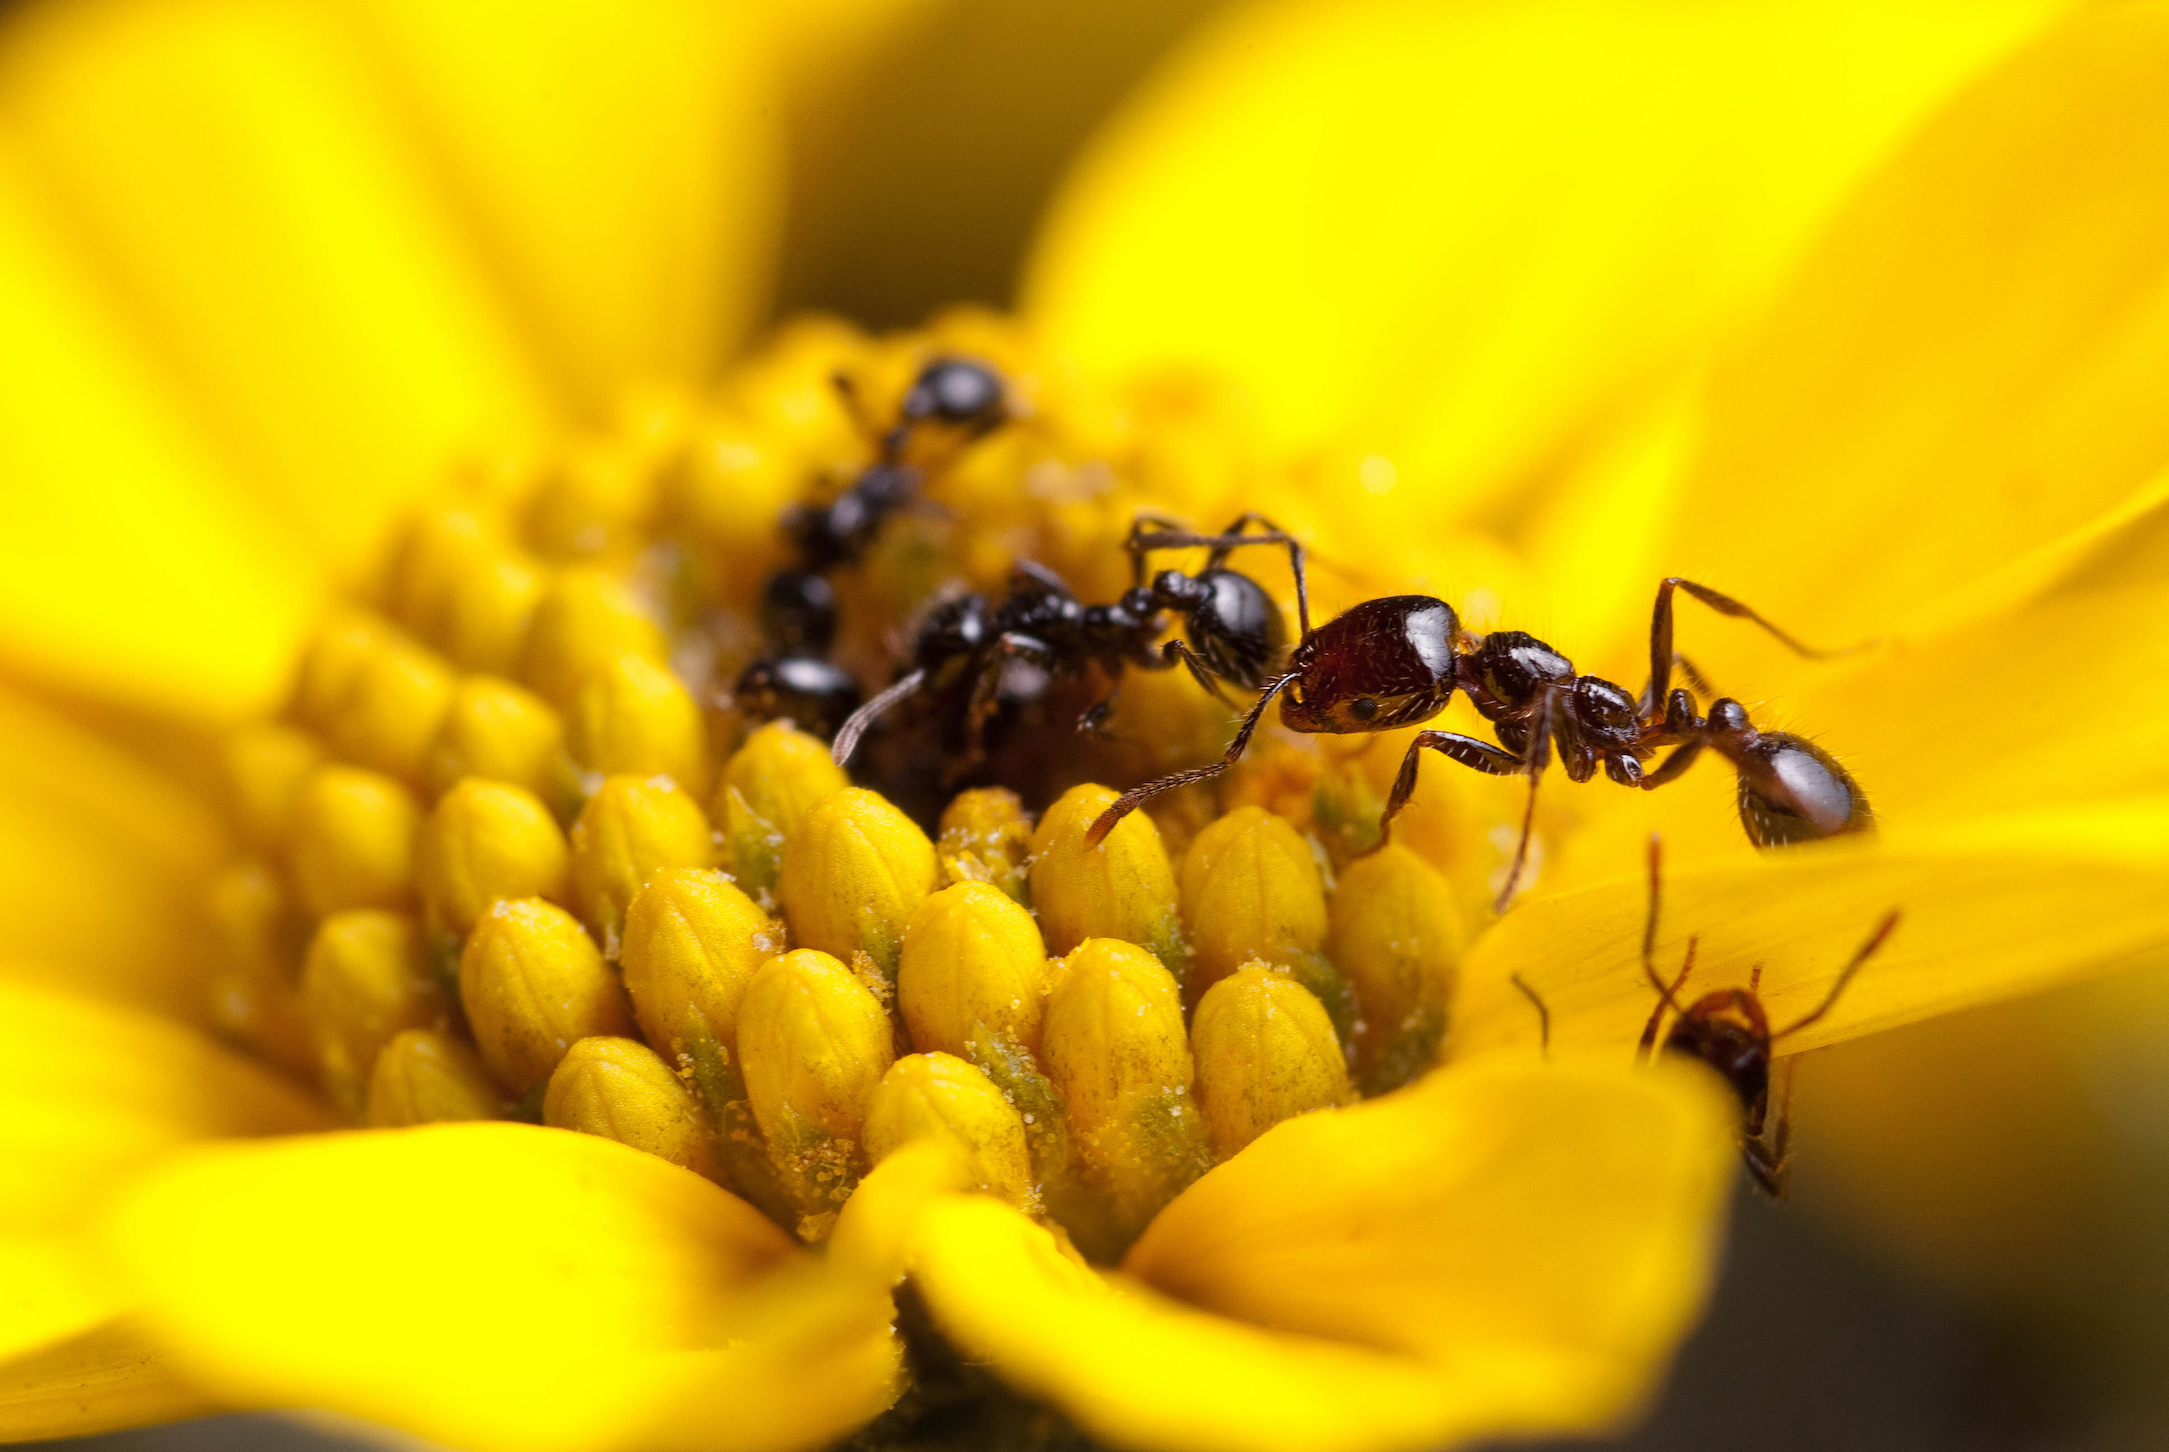 Many ant species are capable of producing their own antibiotics to fight off bacteria and disease and could even help humans.